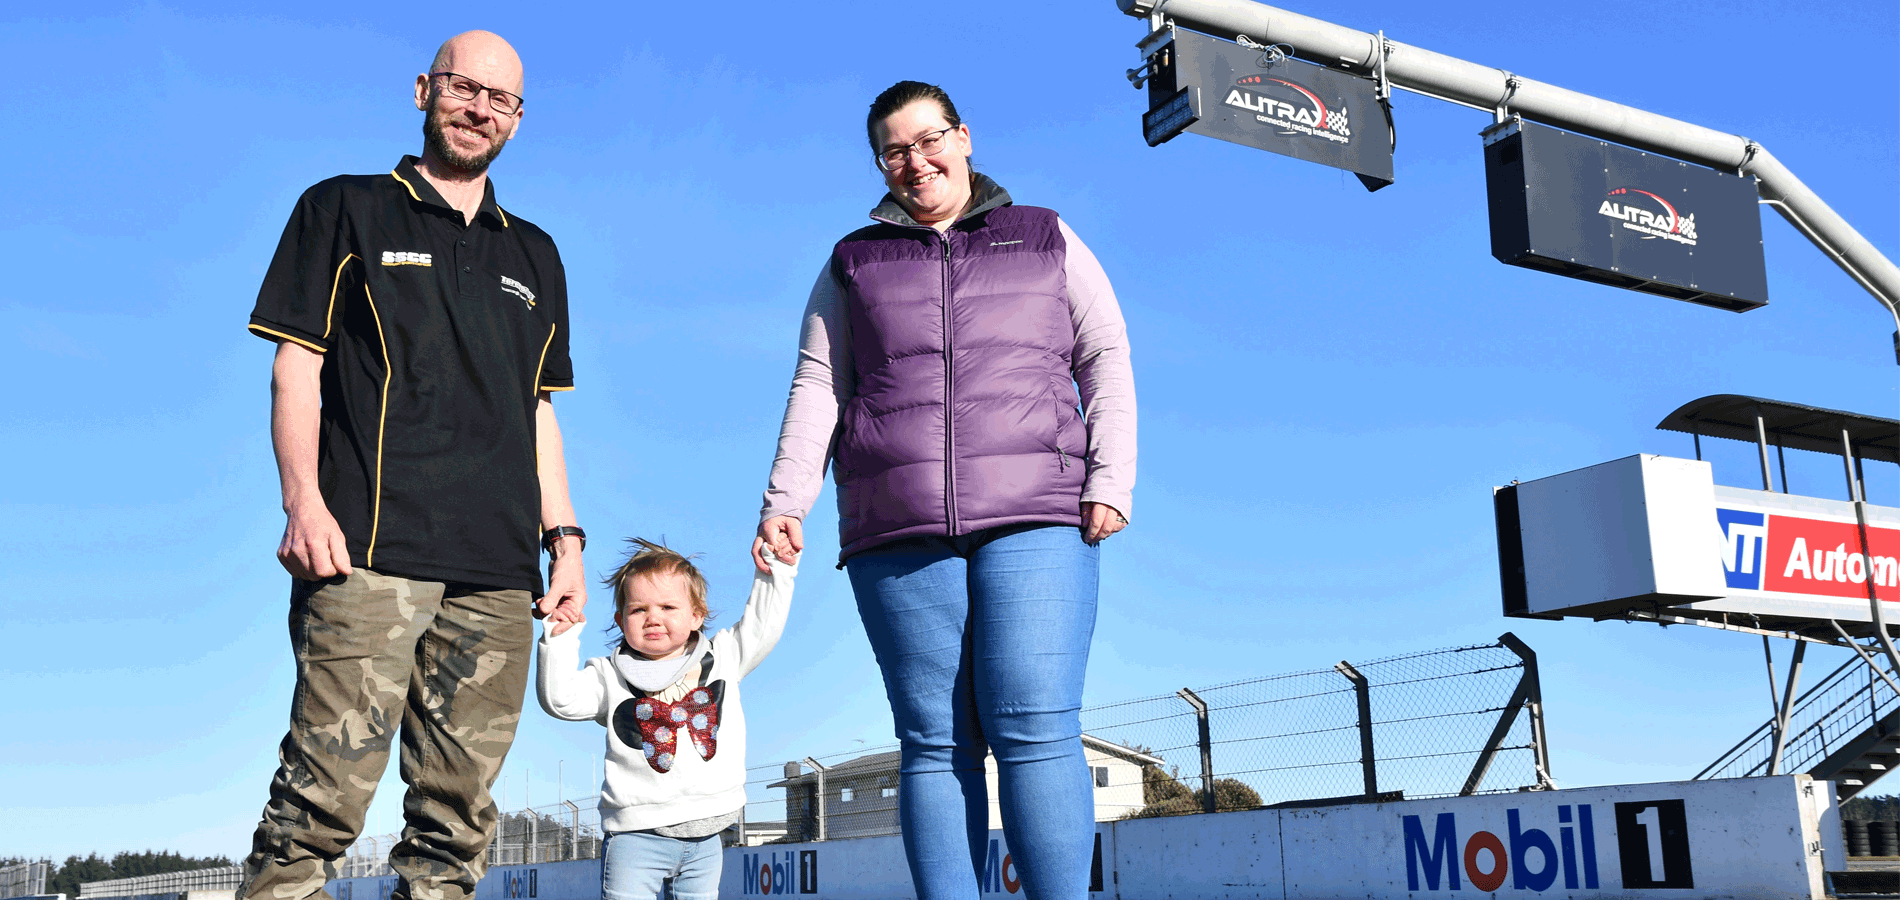 Volunteering In The Genes for Dedicated Southern Racing Fans